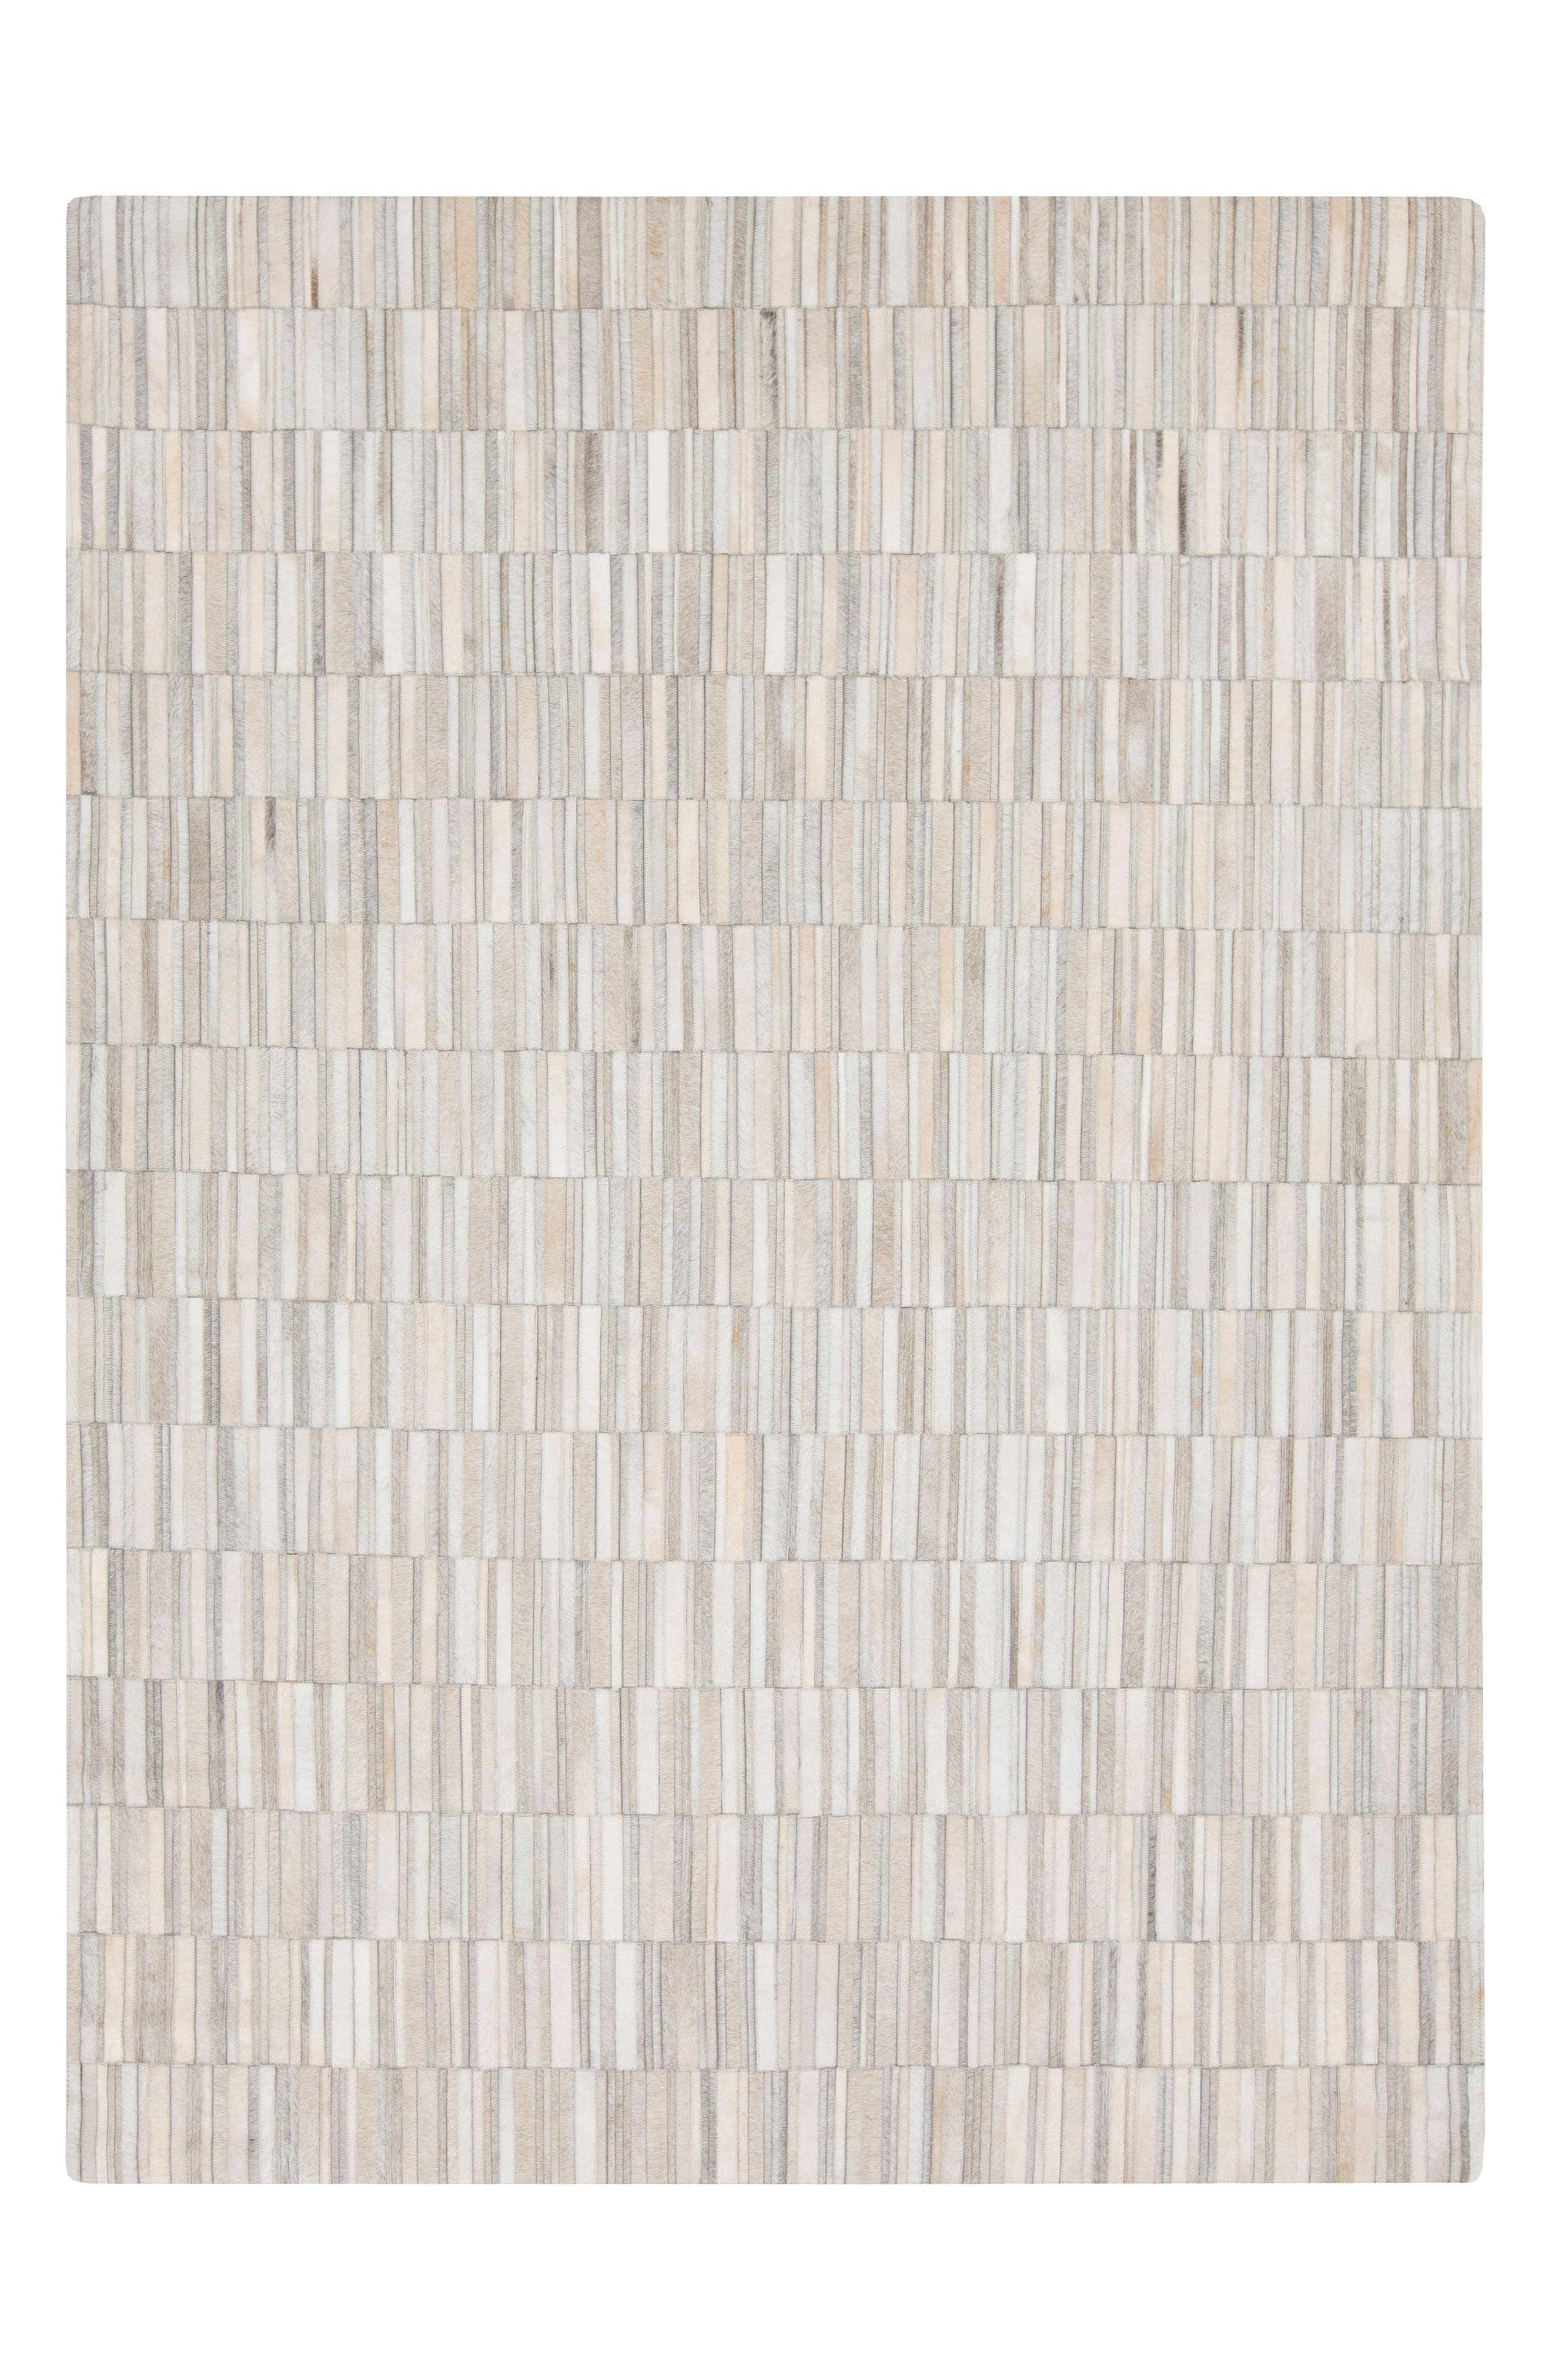 Outback Genuine Calf Hair Rug,                             Main thumbnail 1, color,                             250